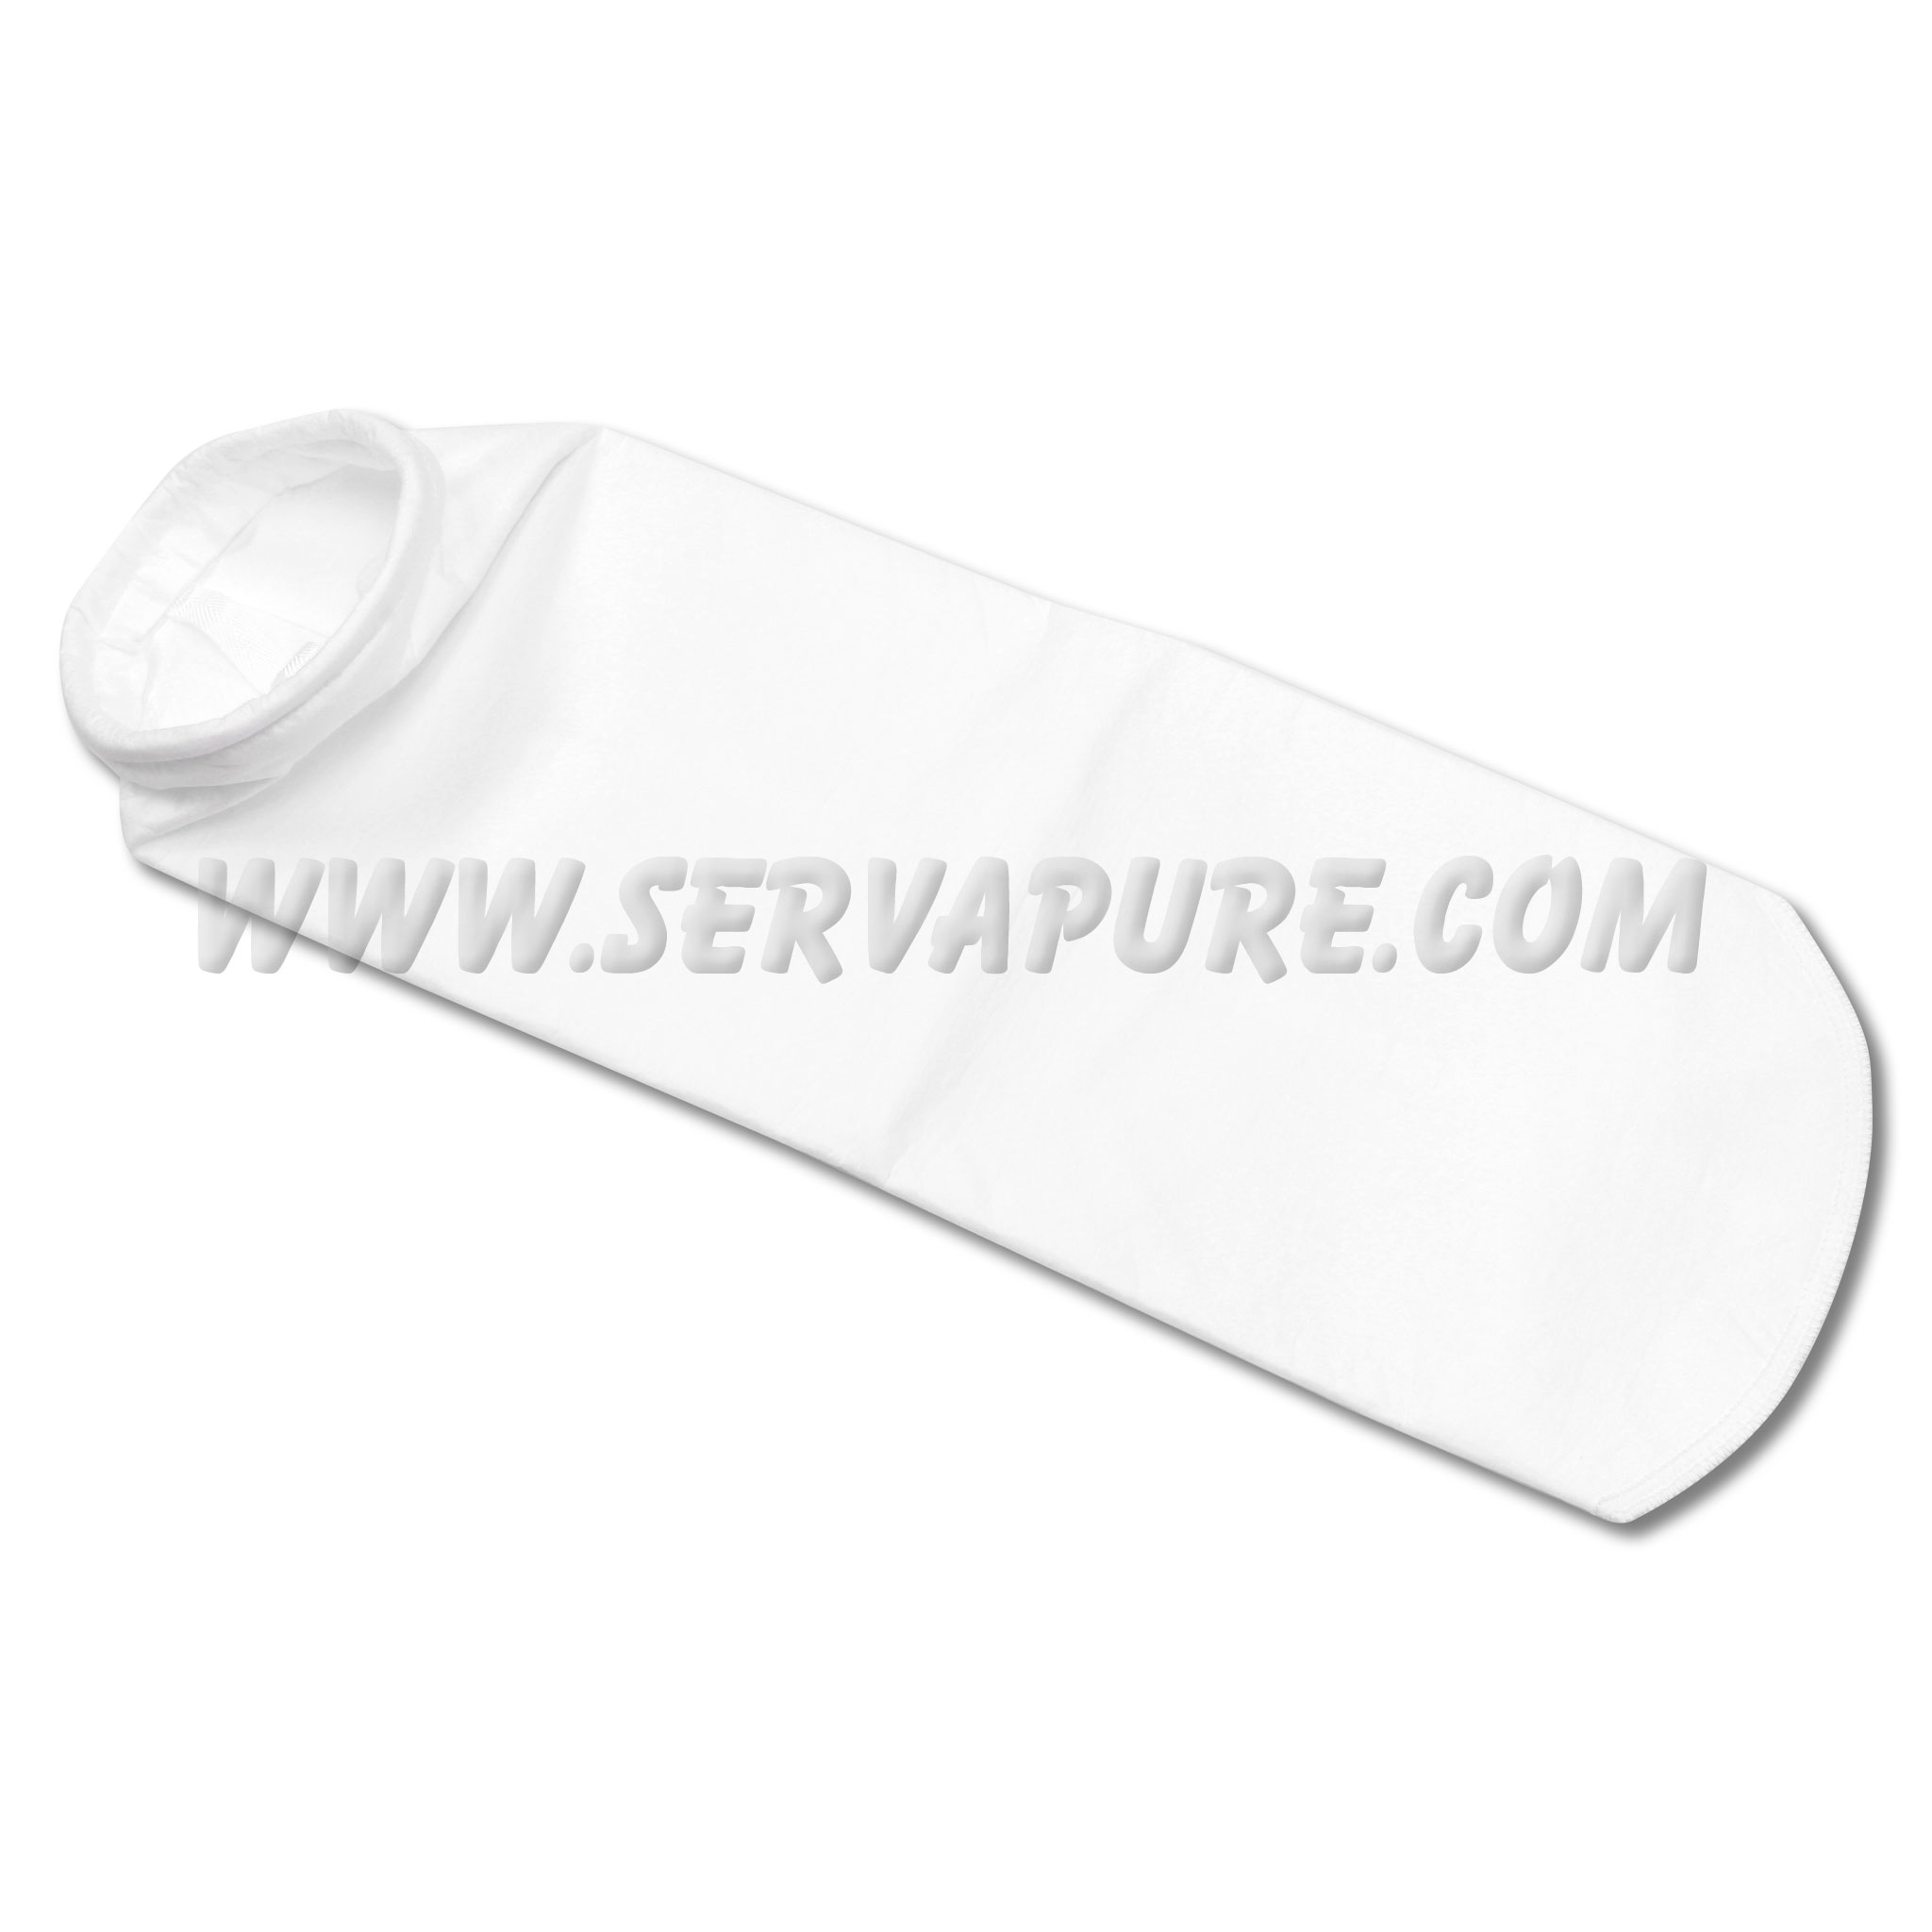 Lesac Filter Bag Polyester 0 5 Micron 2 Size 50 Per